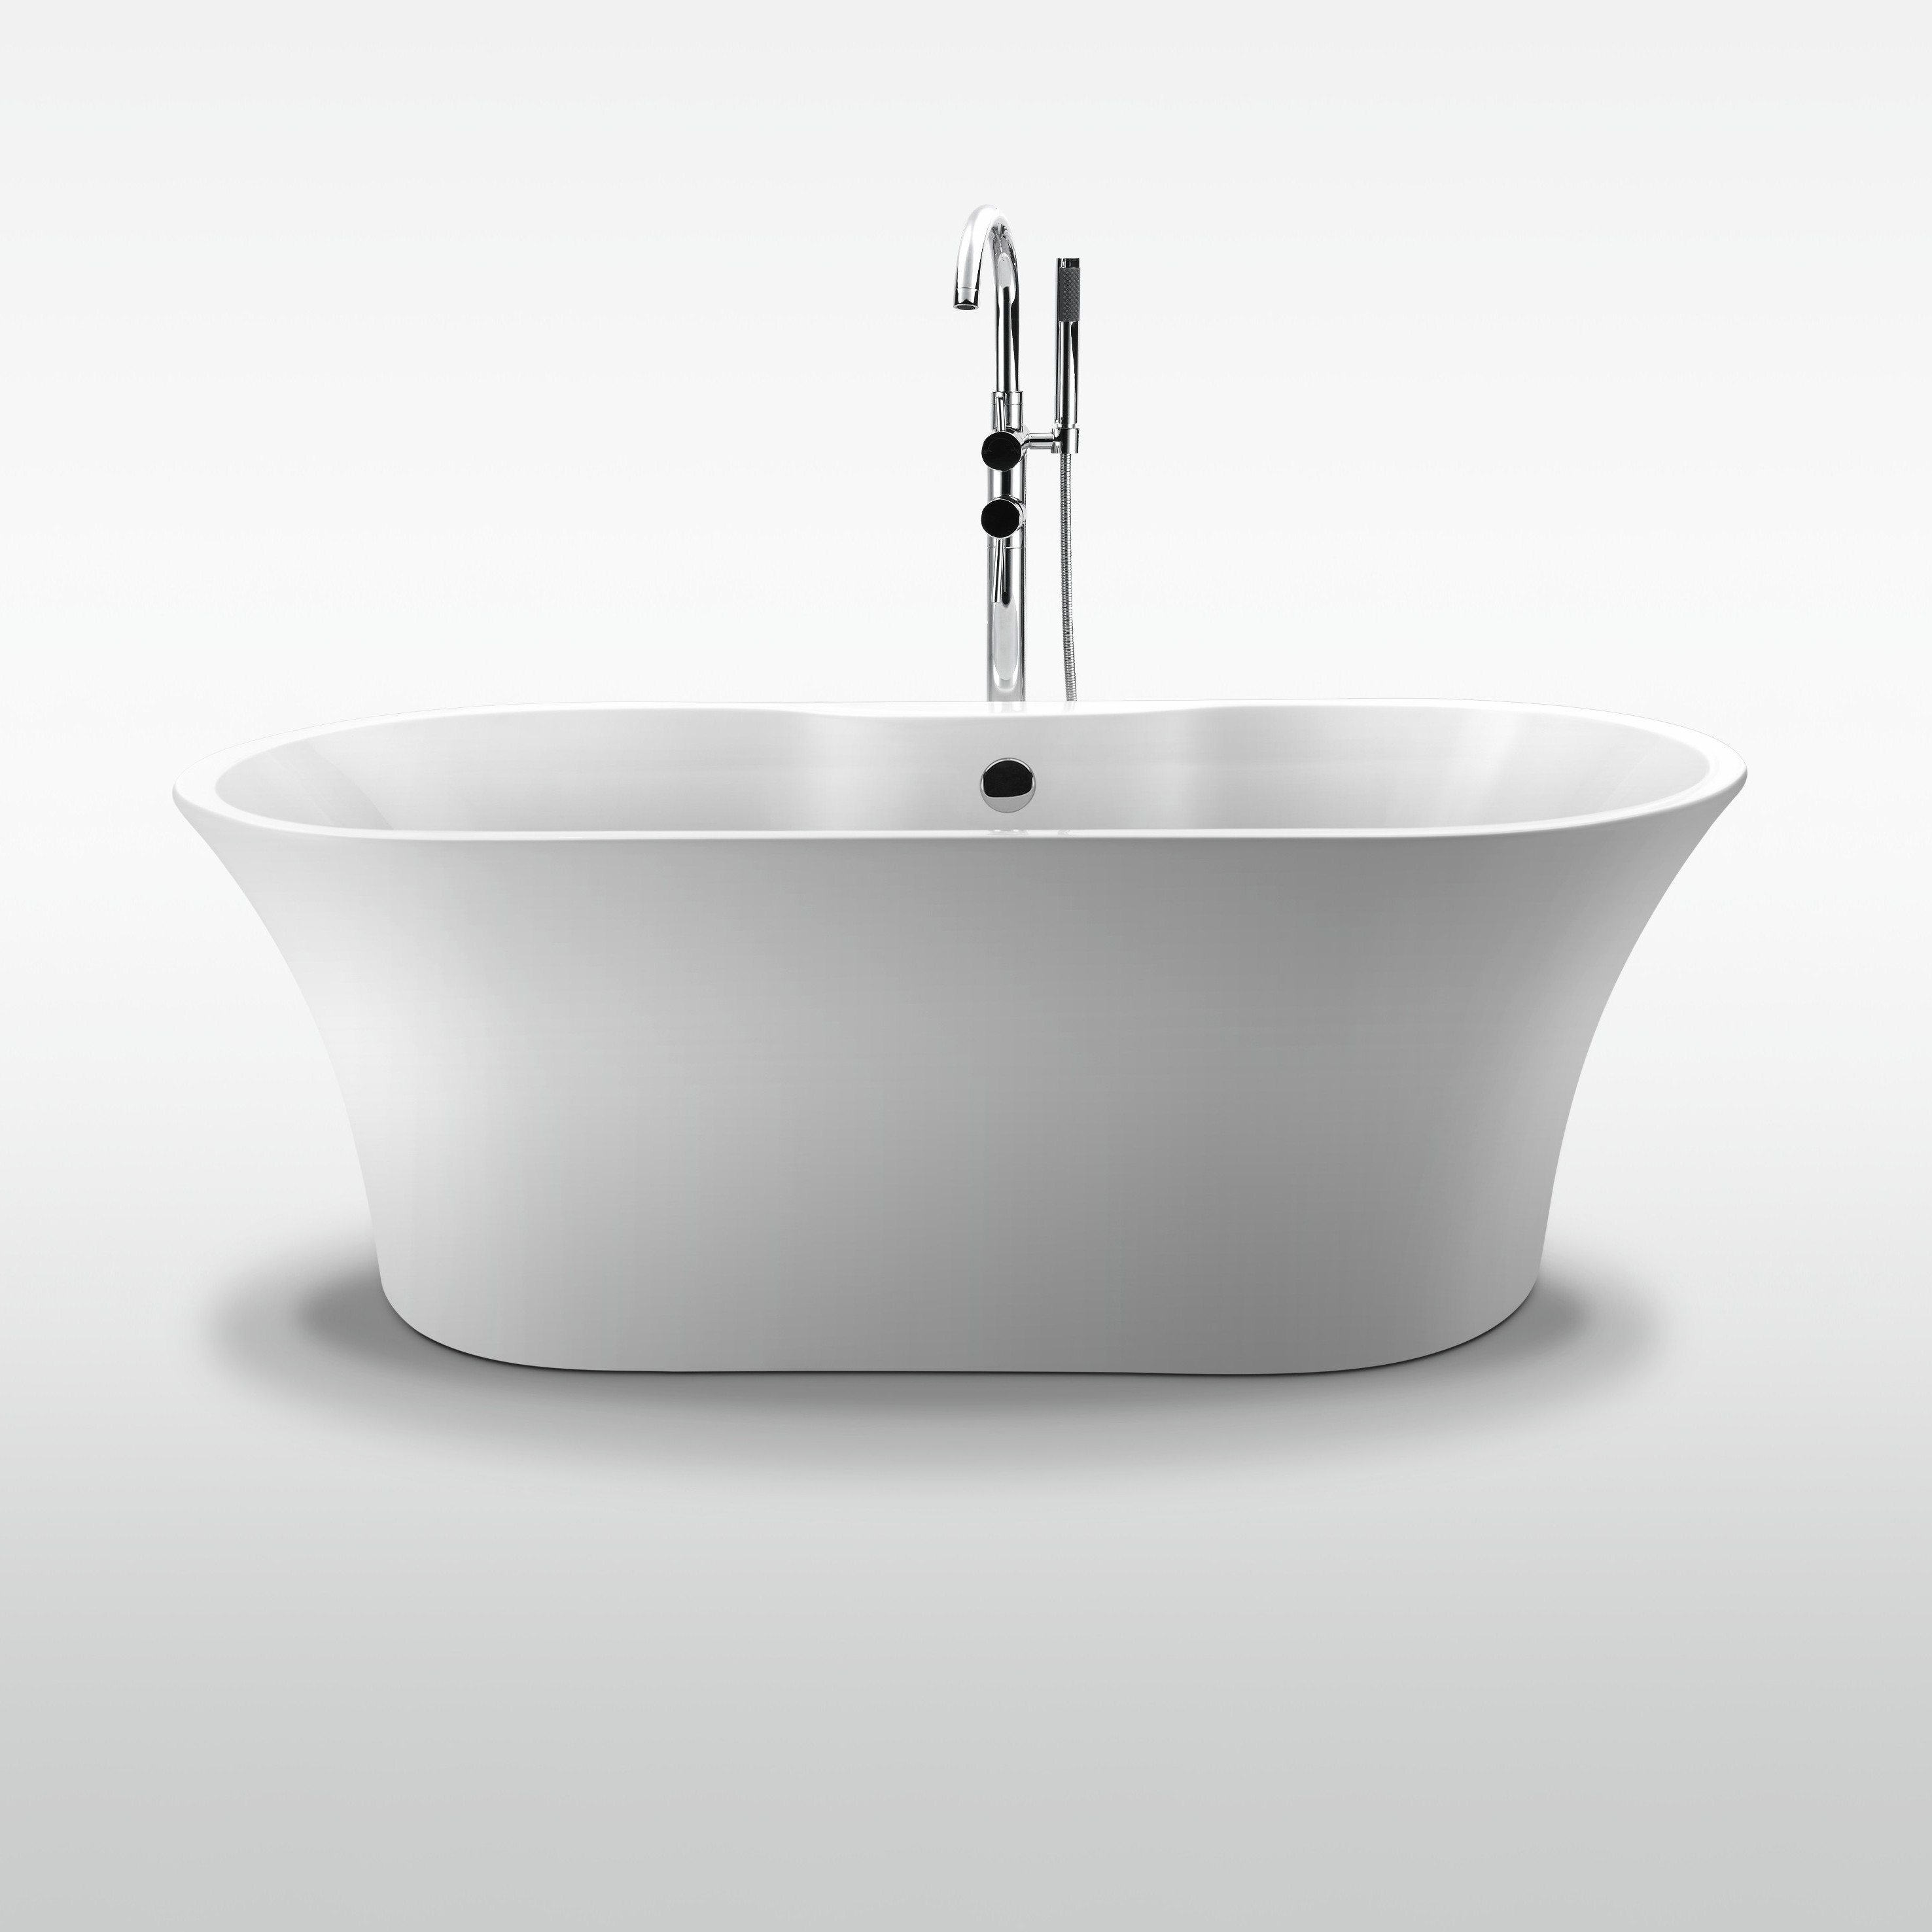 products acrylic bathtub one mibaths noss piece freestanding graphic